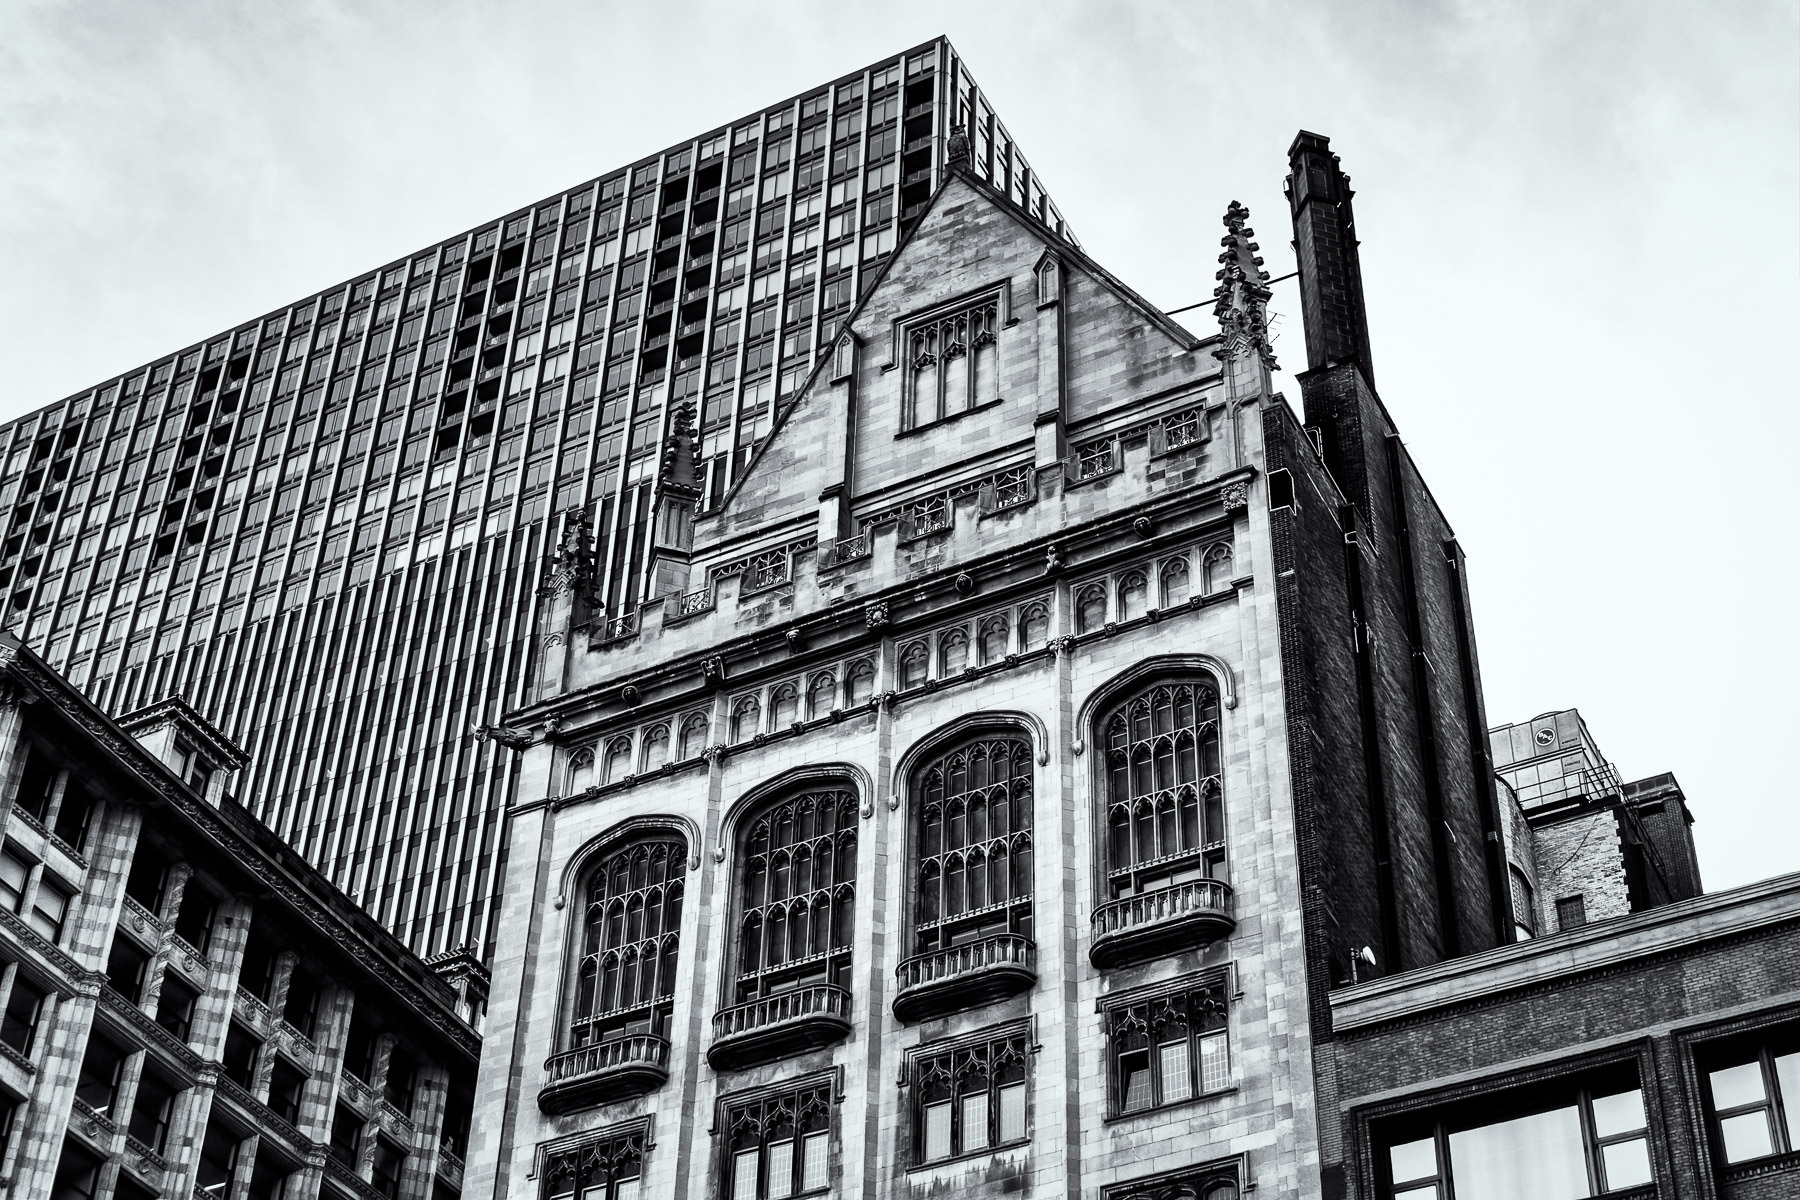 The gothic-styled University Club of Chicago building is dwarfed by the nearby Mid-Continental Plaza.